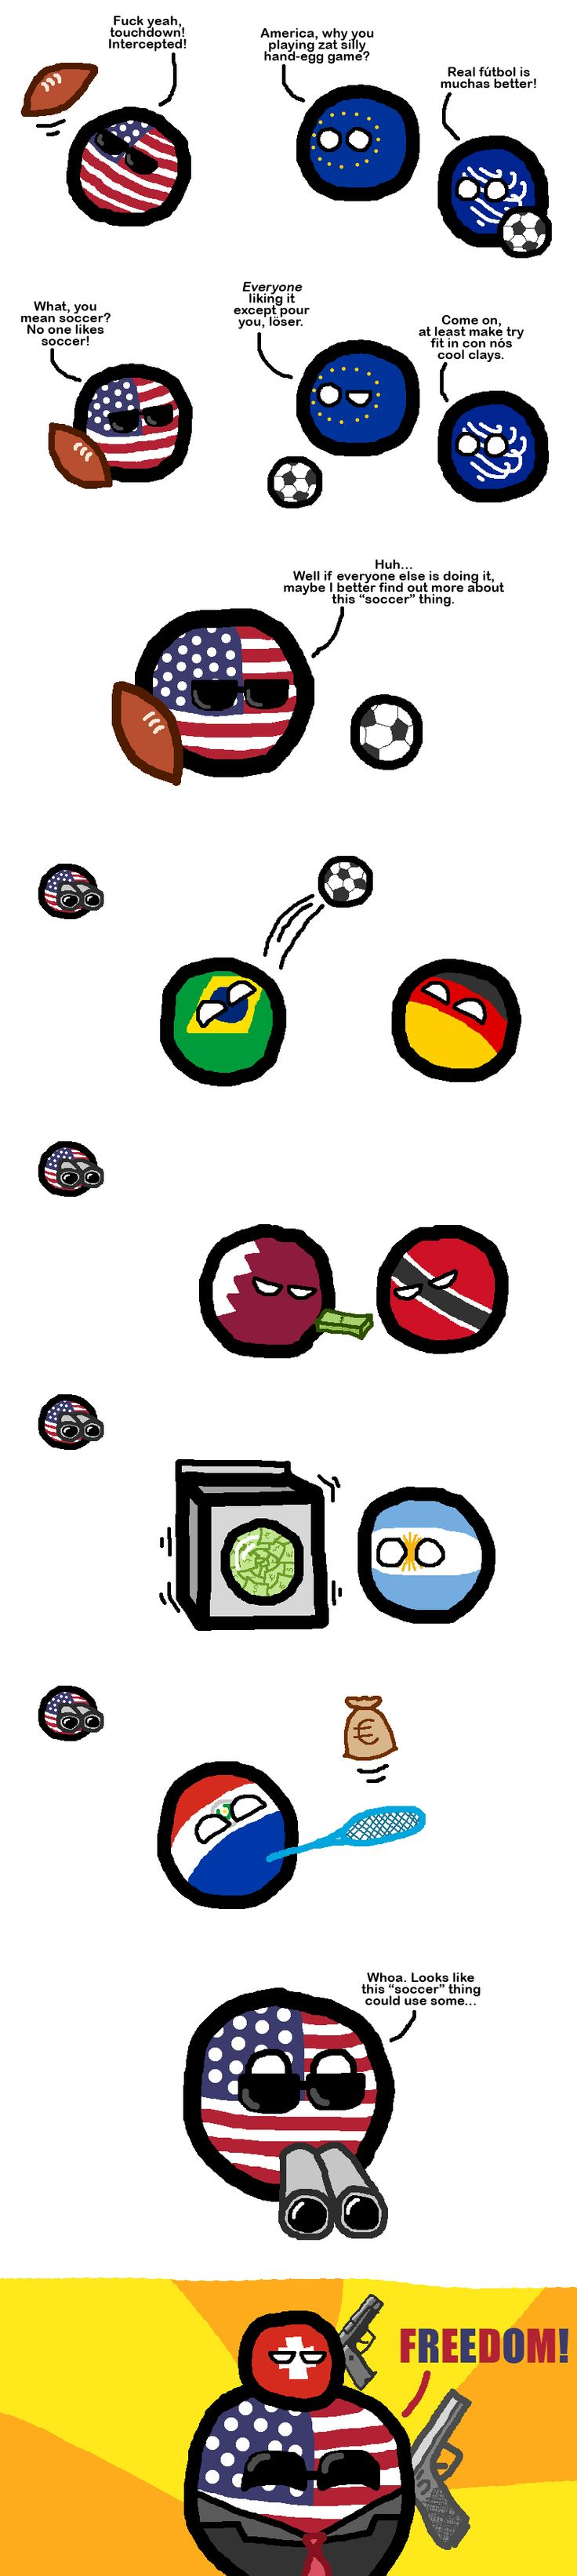 America Gets Interested In Soccer ( USA, Europe, Brazil, Germany, Qatar, Trinidad and Tobago, Argentina, Paraguay, Switch ) by the sunisup  #polandball #countryball